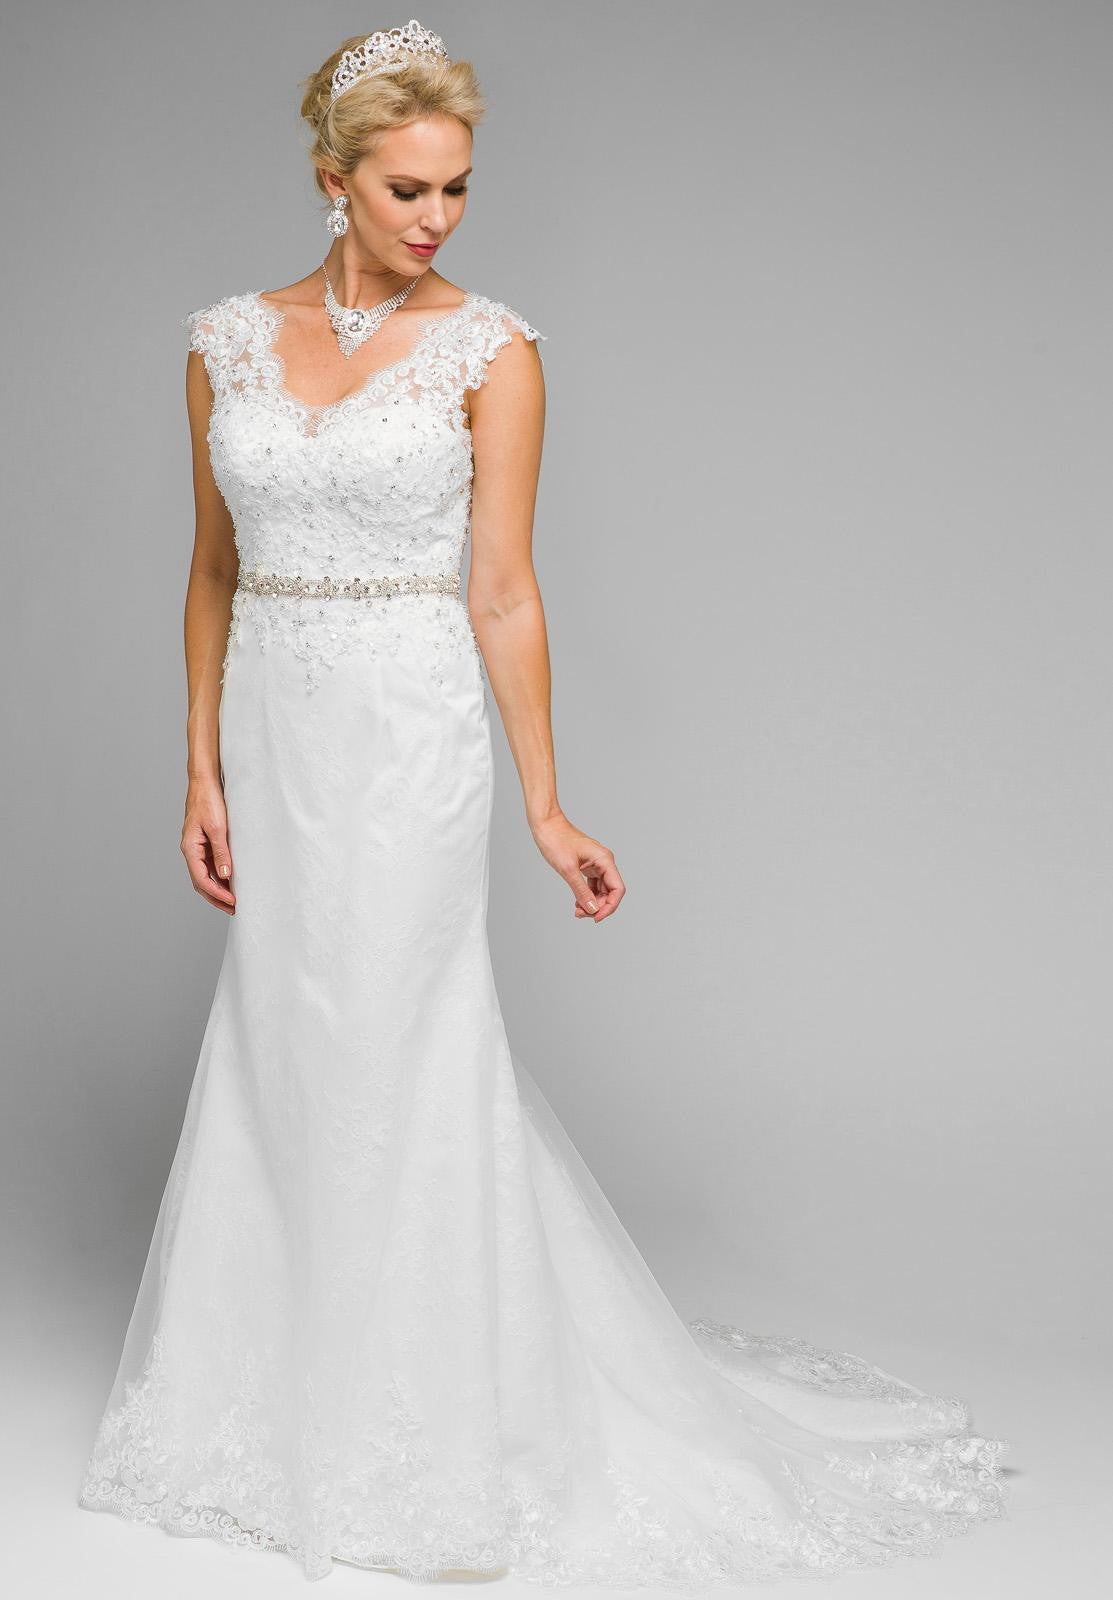 Juliet 339 Cap Sleeve Fit and Flare Wedding Dress White ...